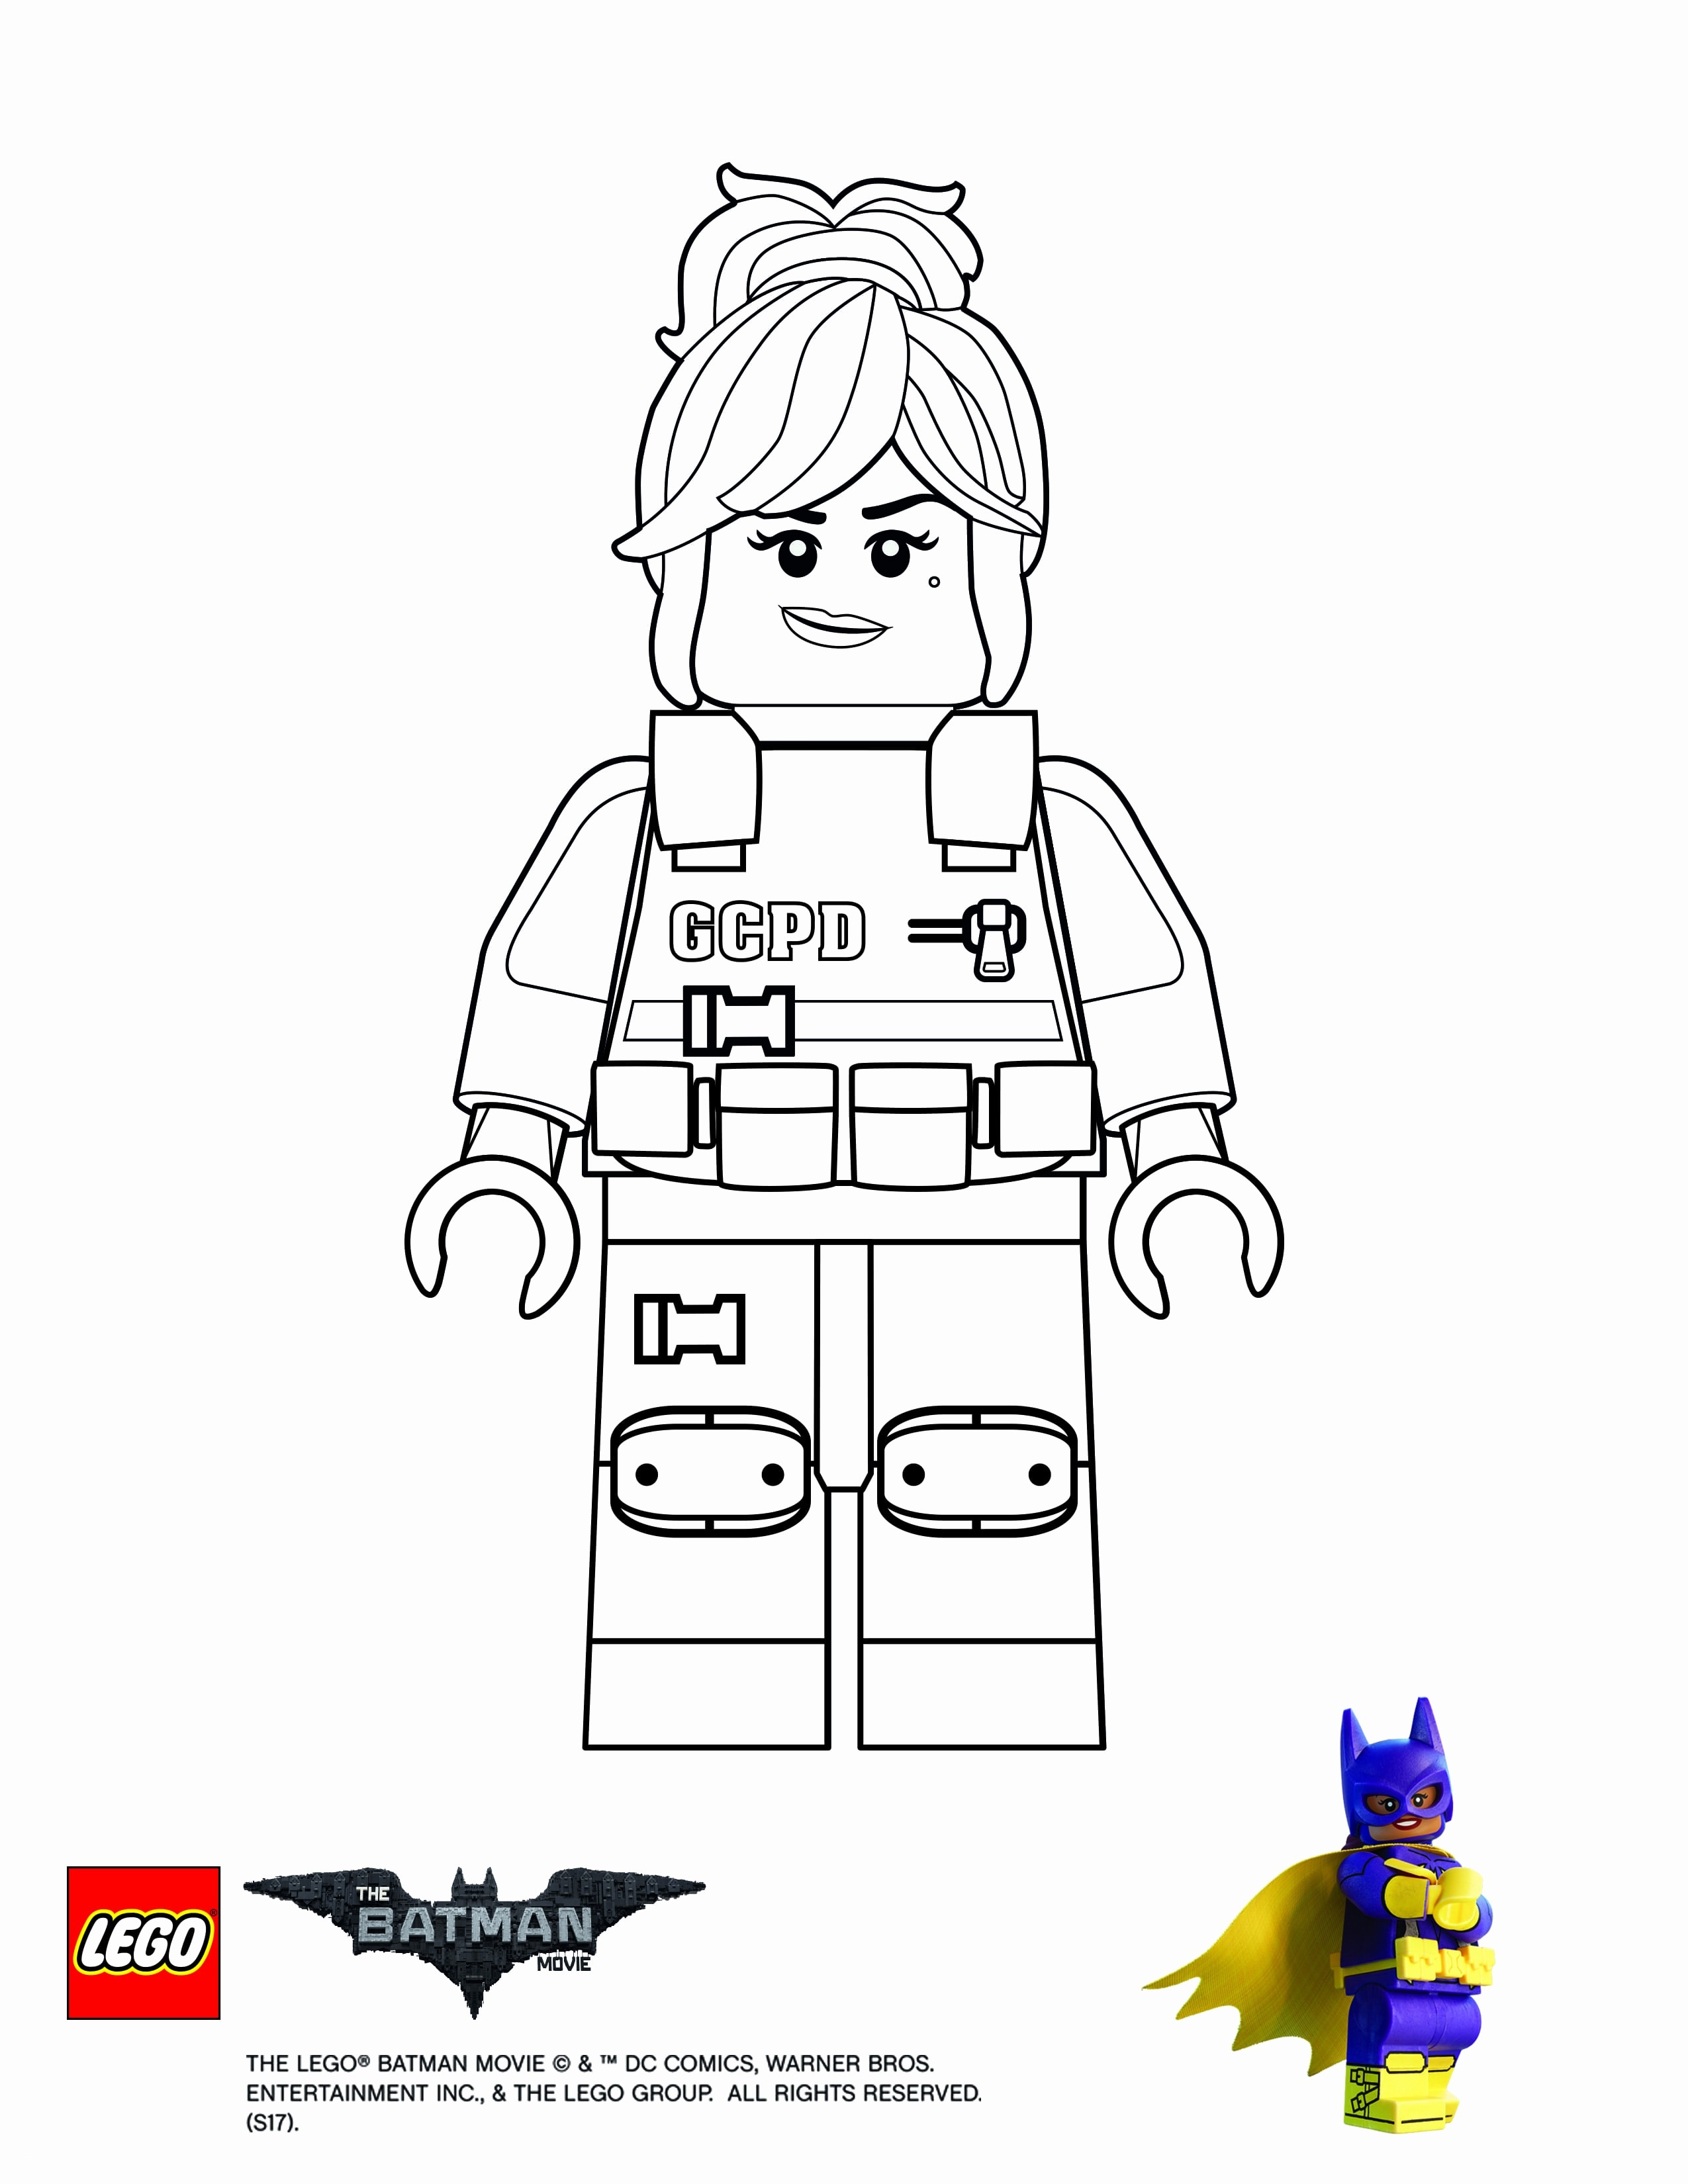 dc comics coloring pages Download-Justice League Coloring Pages Batman Coloring Games New Batman Coloring Pages Printable Lovely 15 14-t